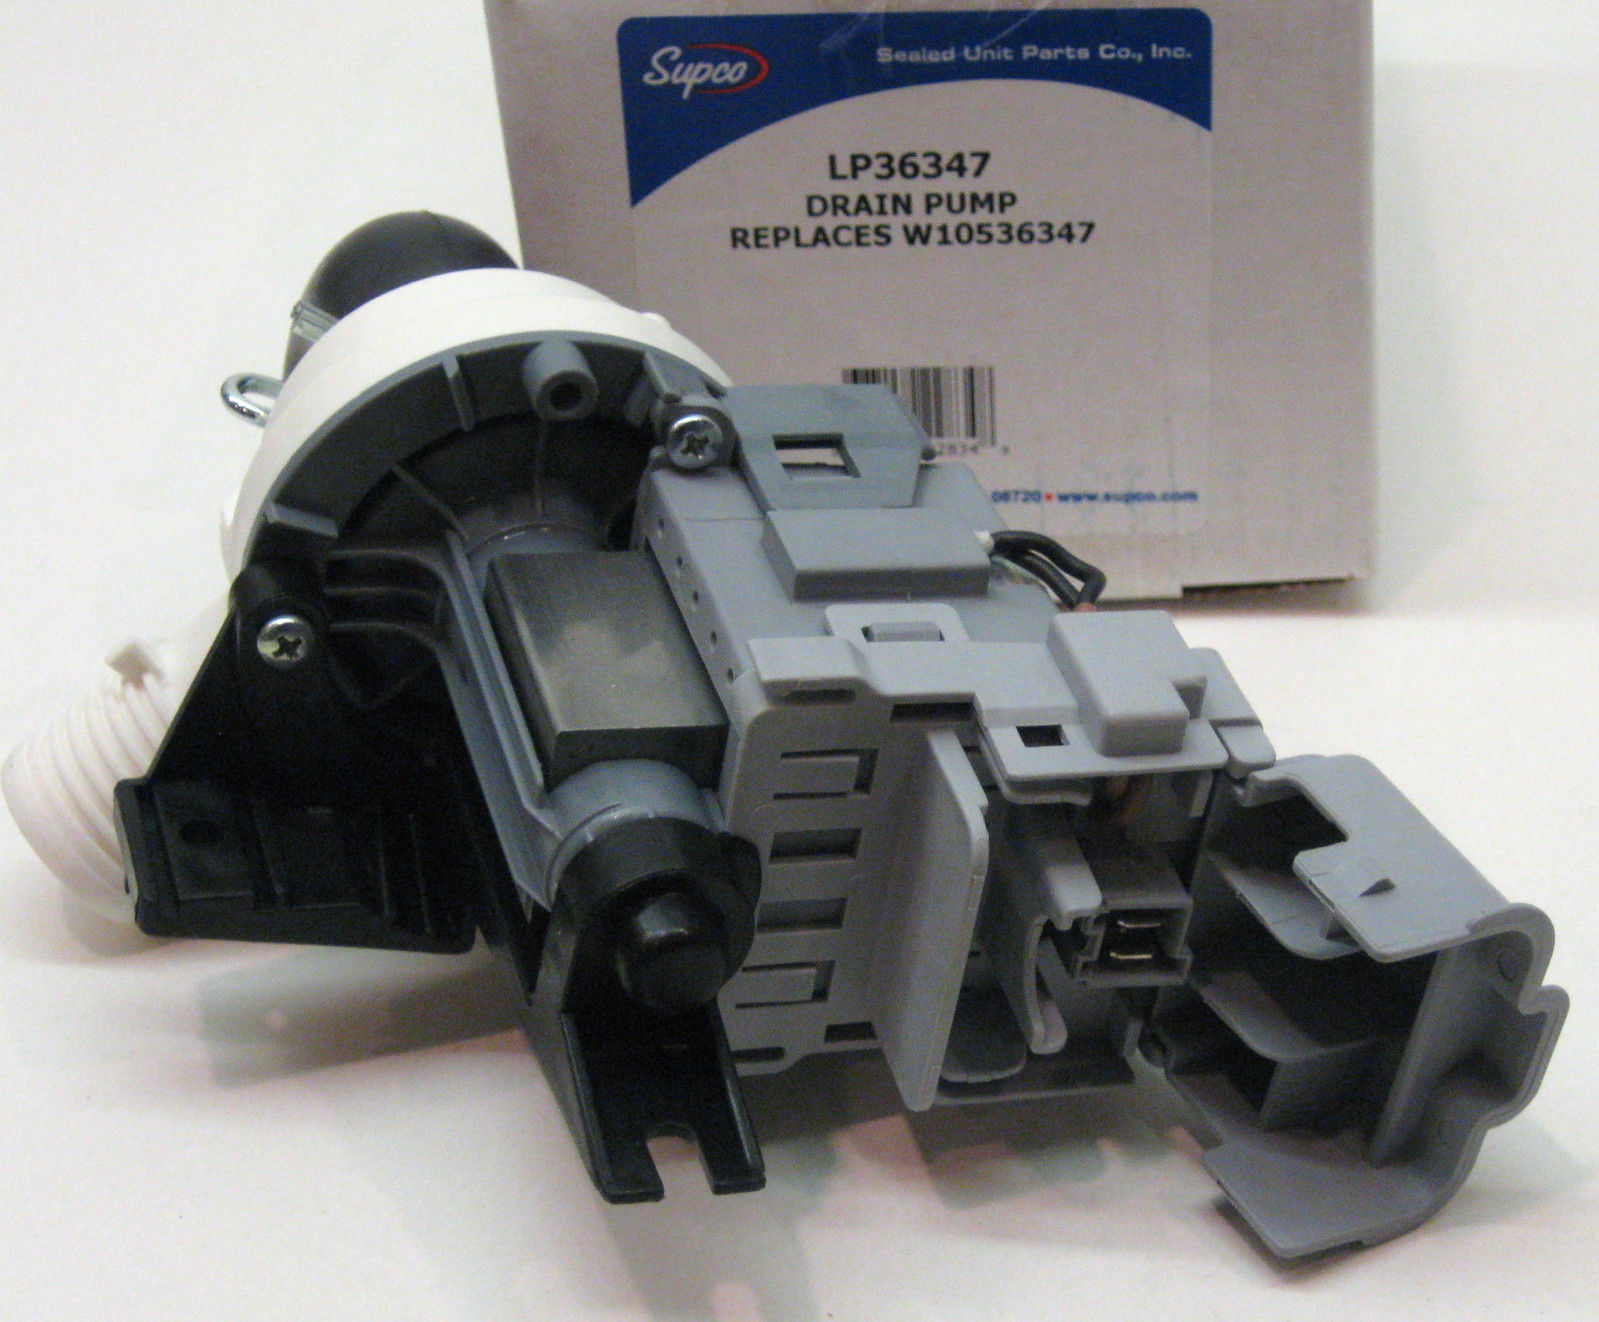 Lp36347 for w10536347 whirlpool kenmore washer pump motor for Kenmore washer motor replacement